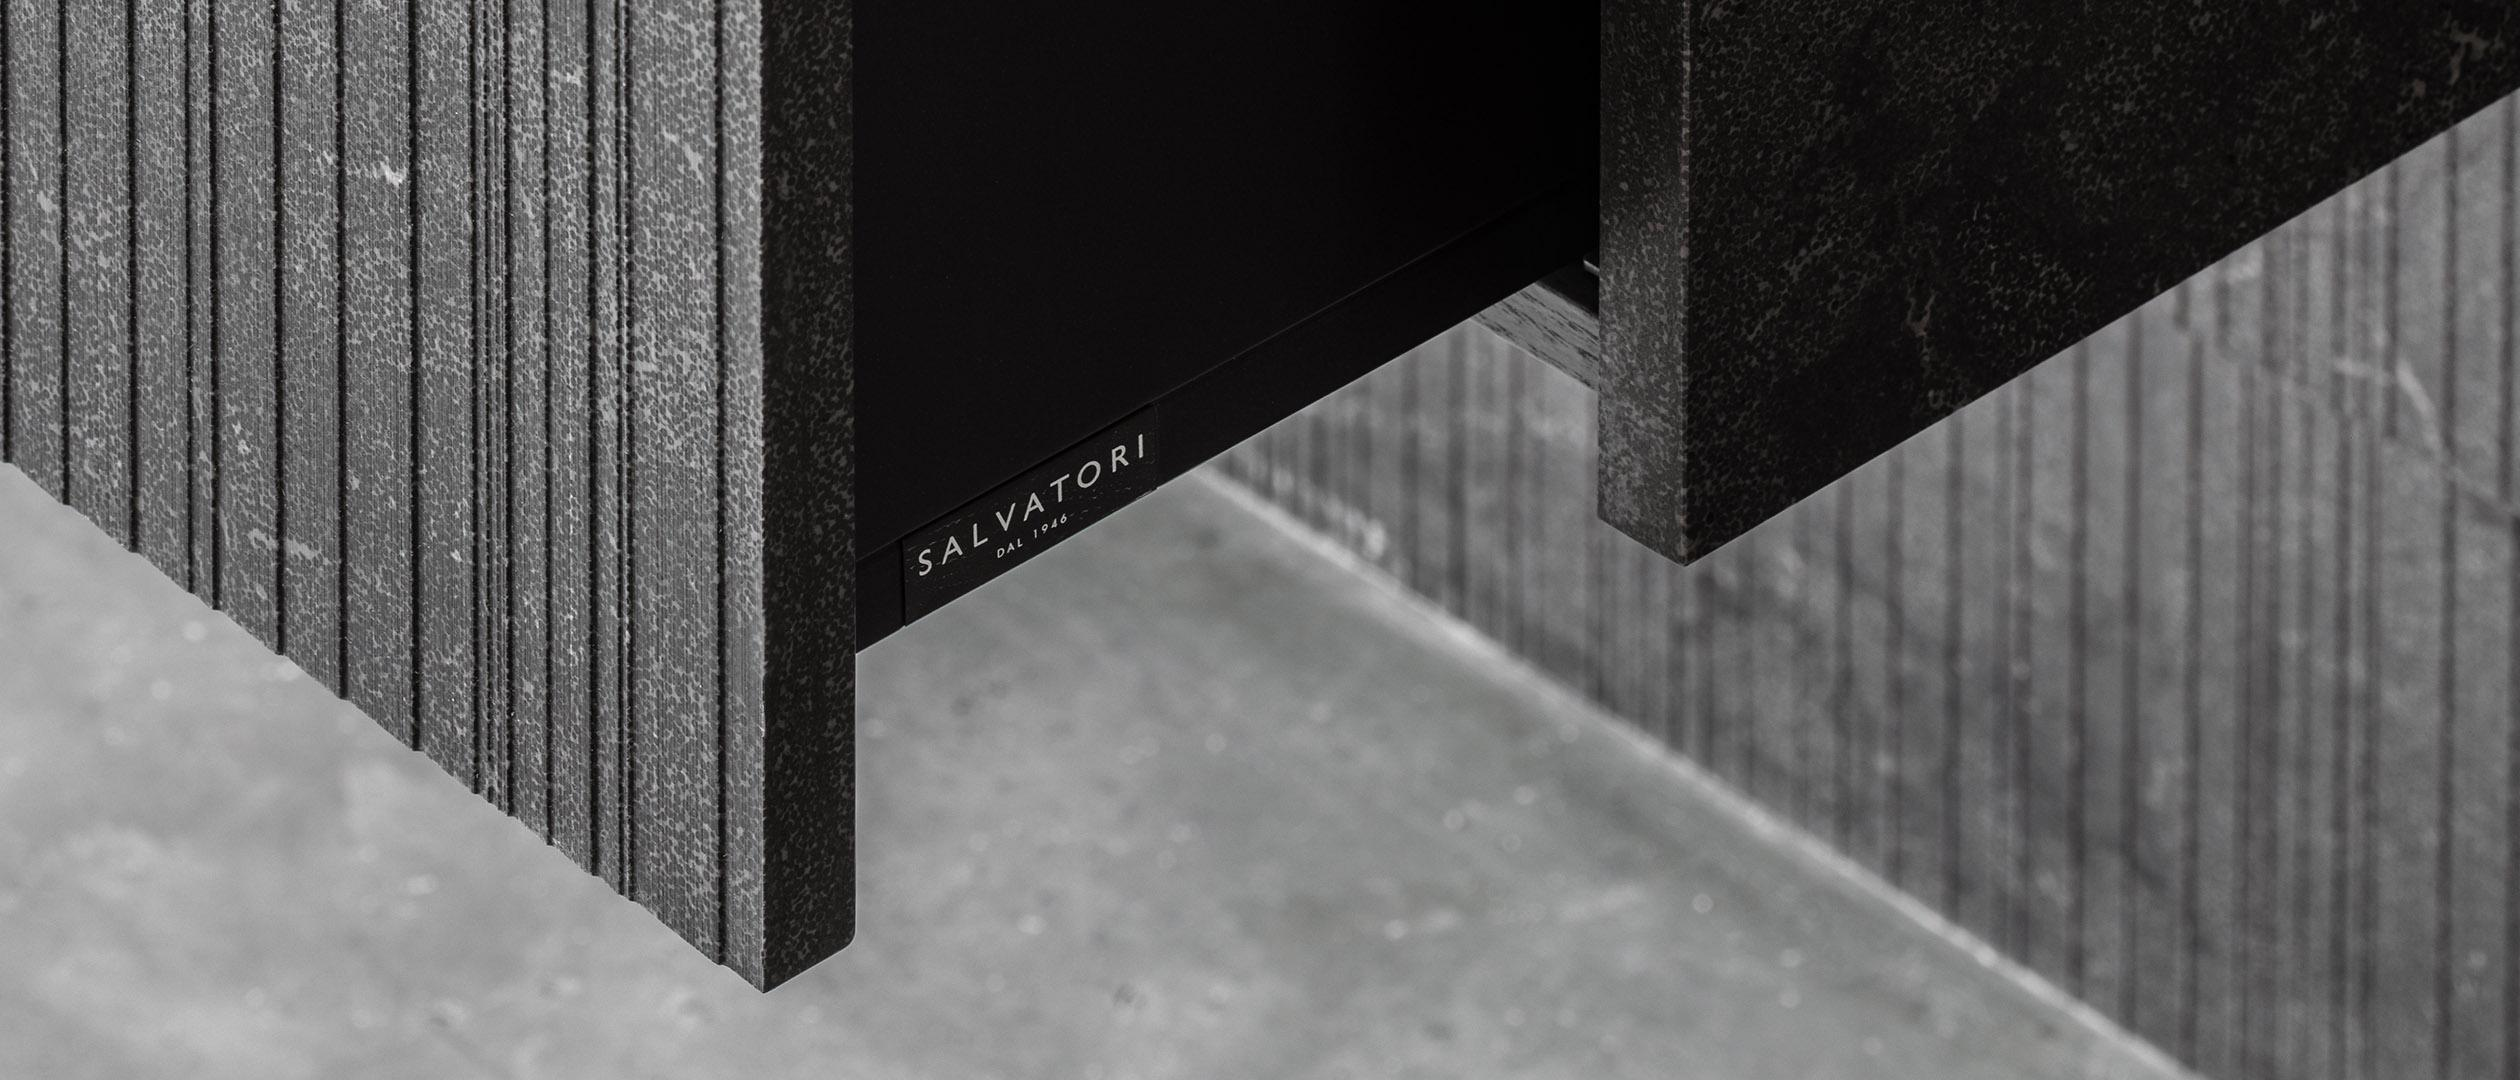 Salvatori showroom